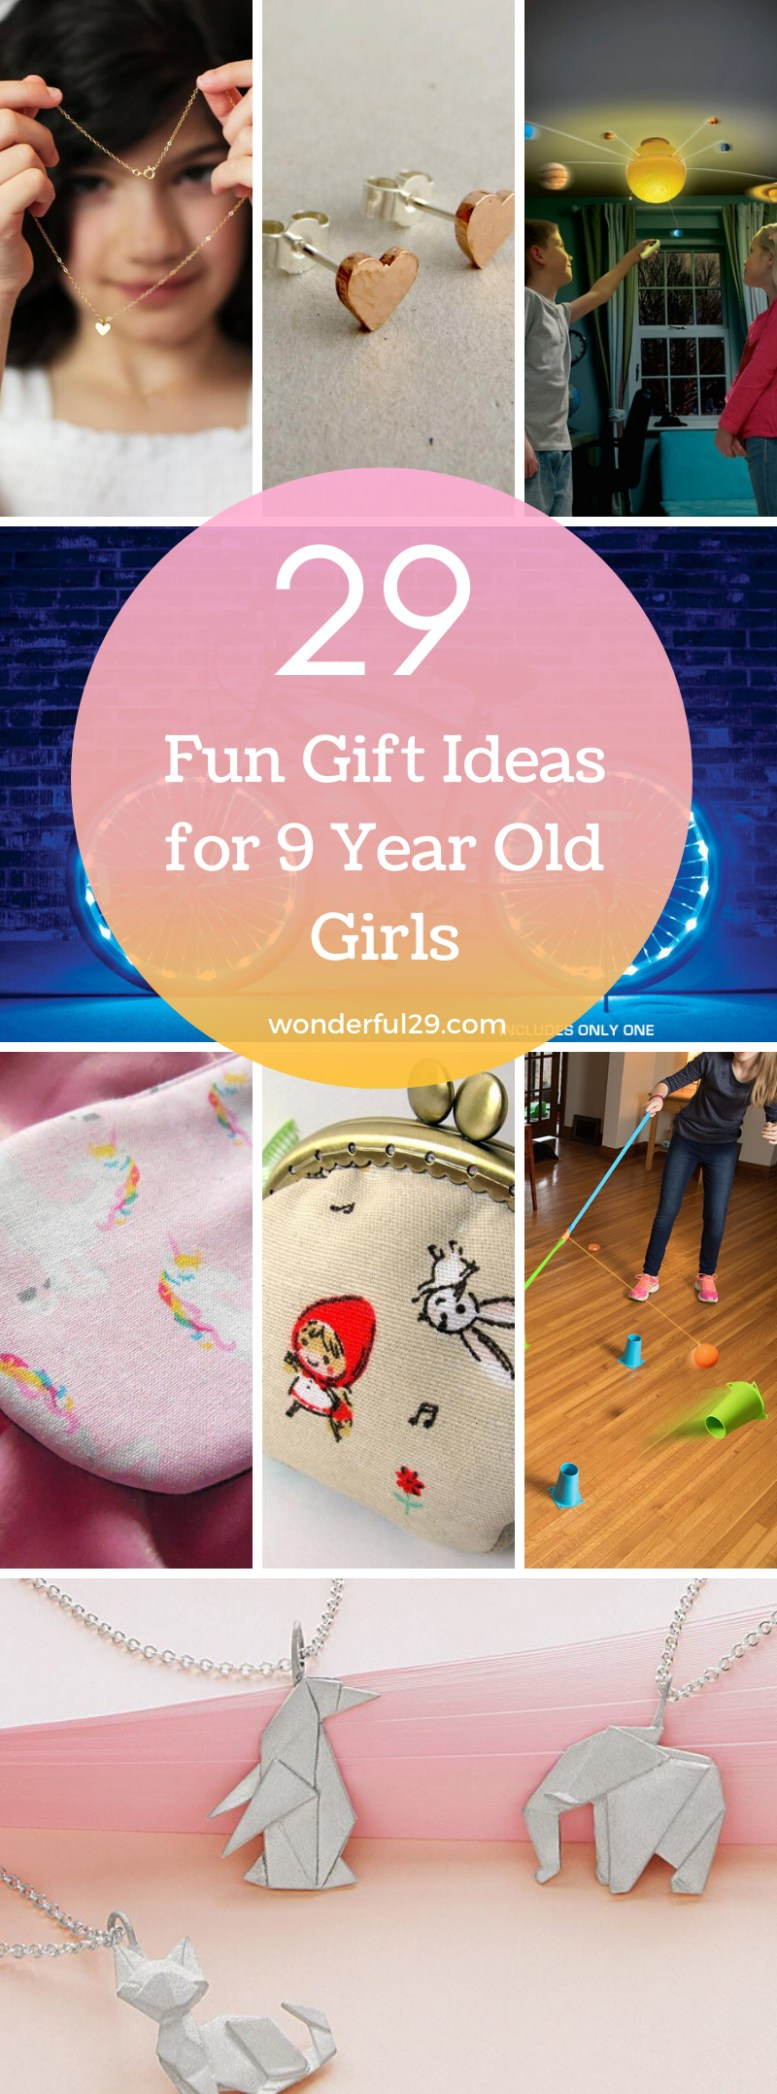 Gifts for 9 Years Old Girls